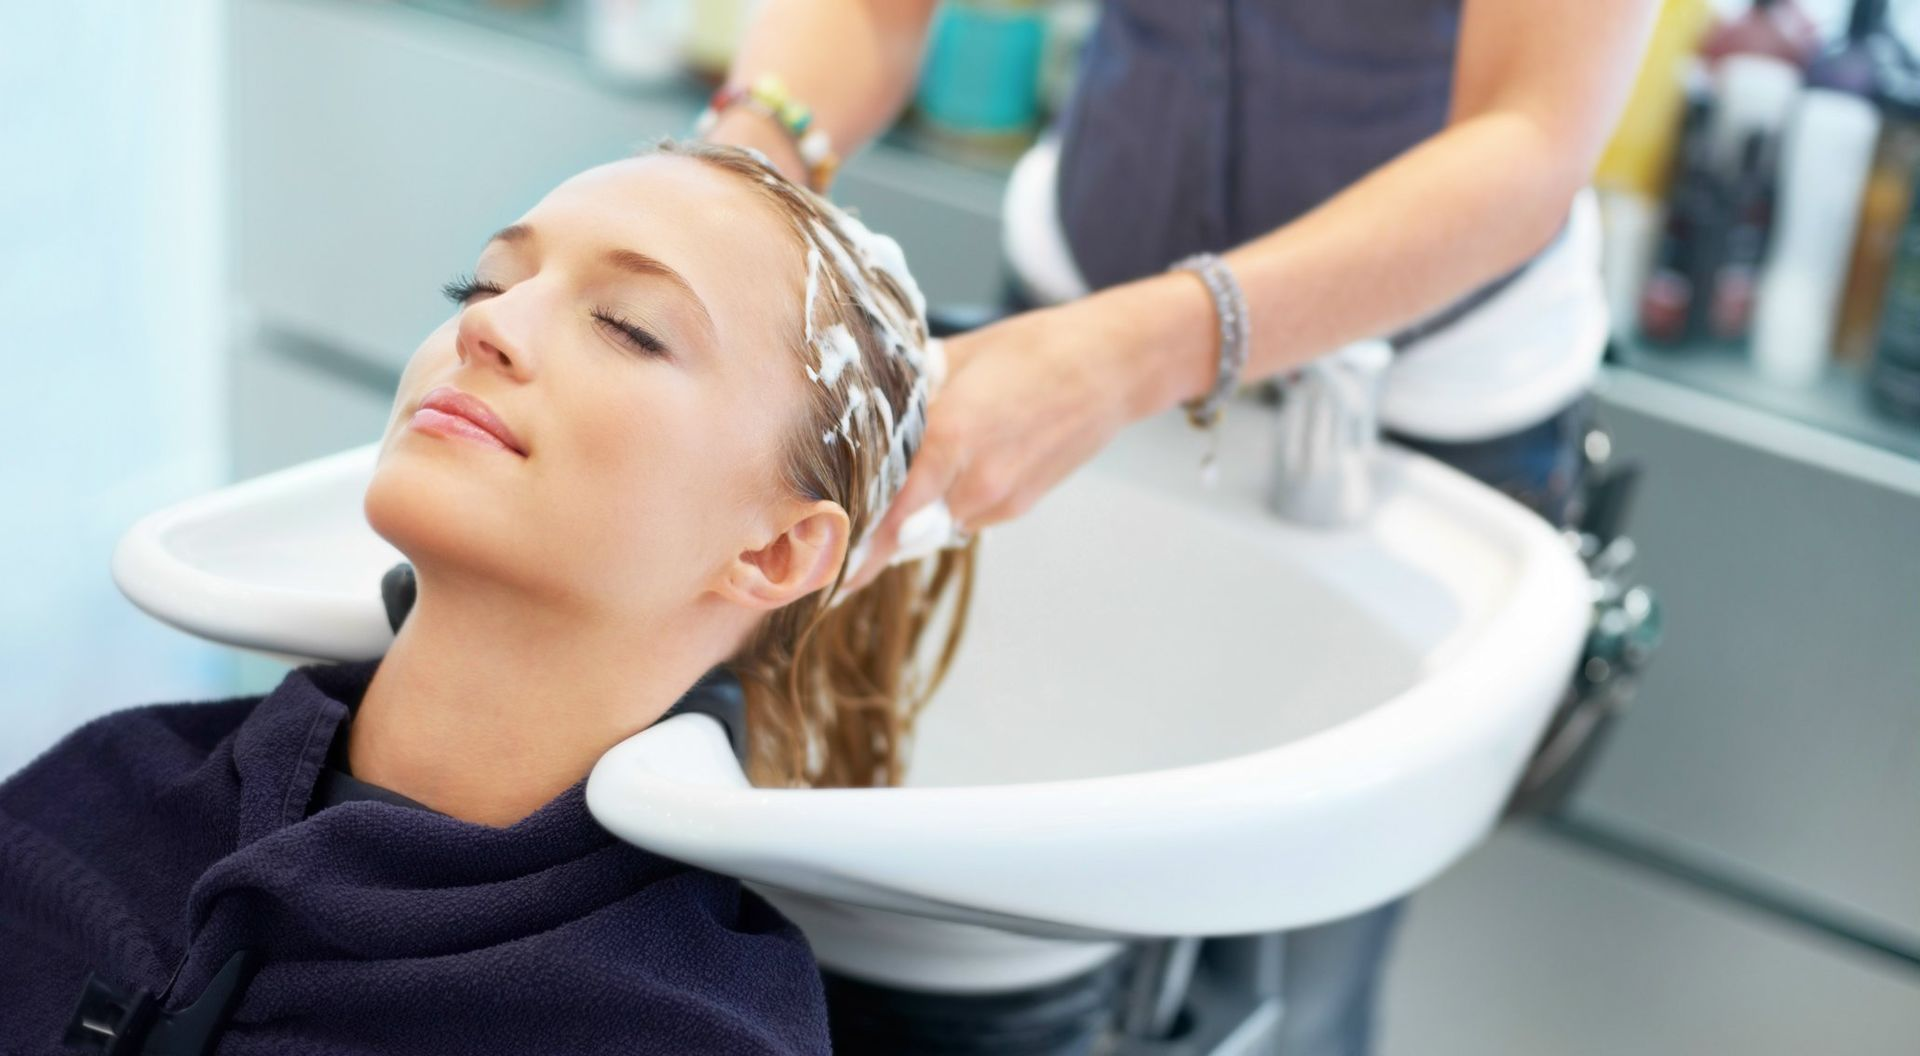 Bored With Slaving Over Your Hair? Get Easy Tip And Tricks For Superb Locks